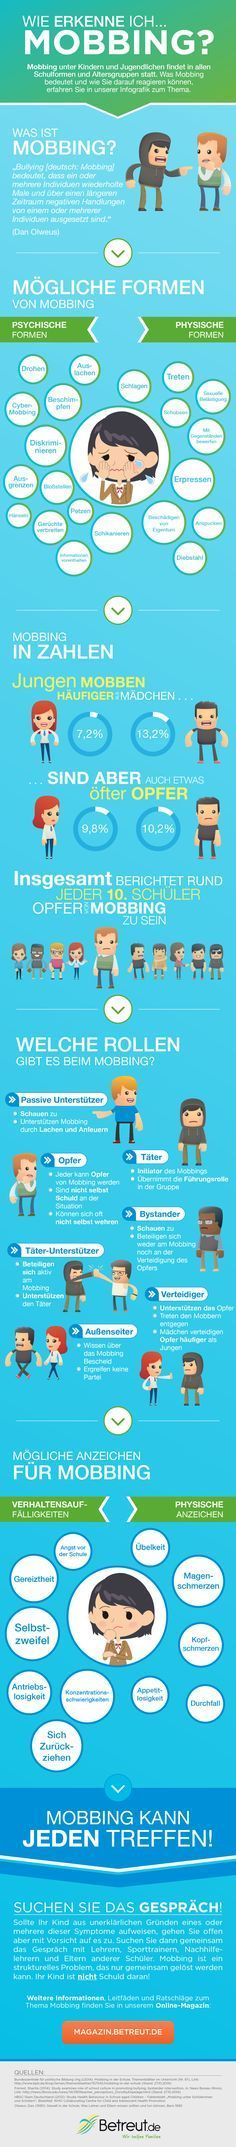 189 best Blog images on Pinterest | German language, German language ...